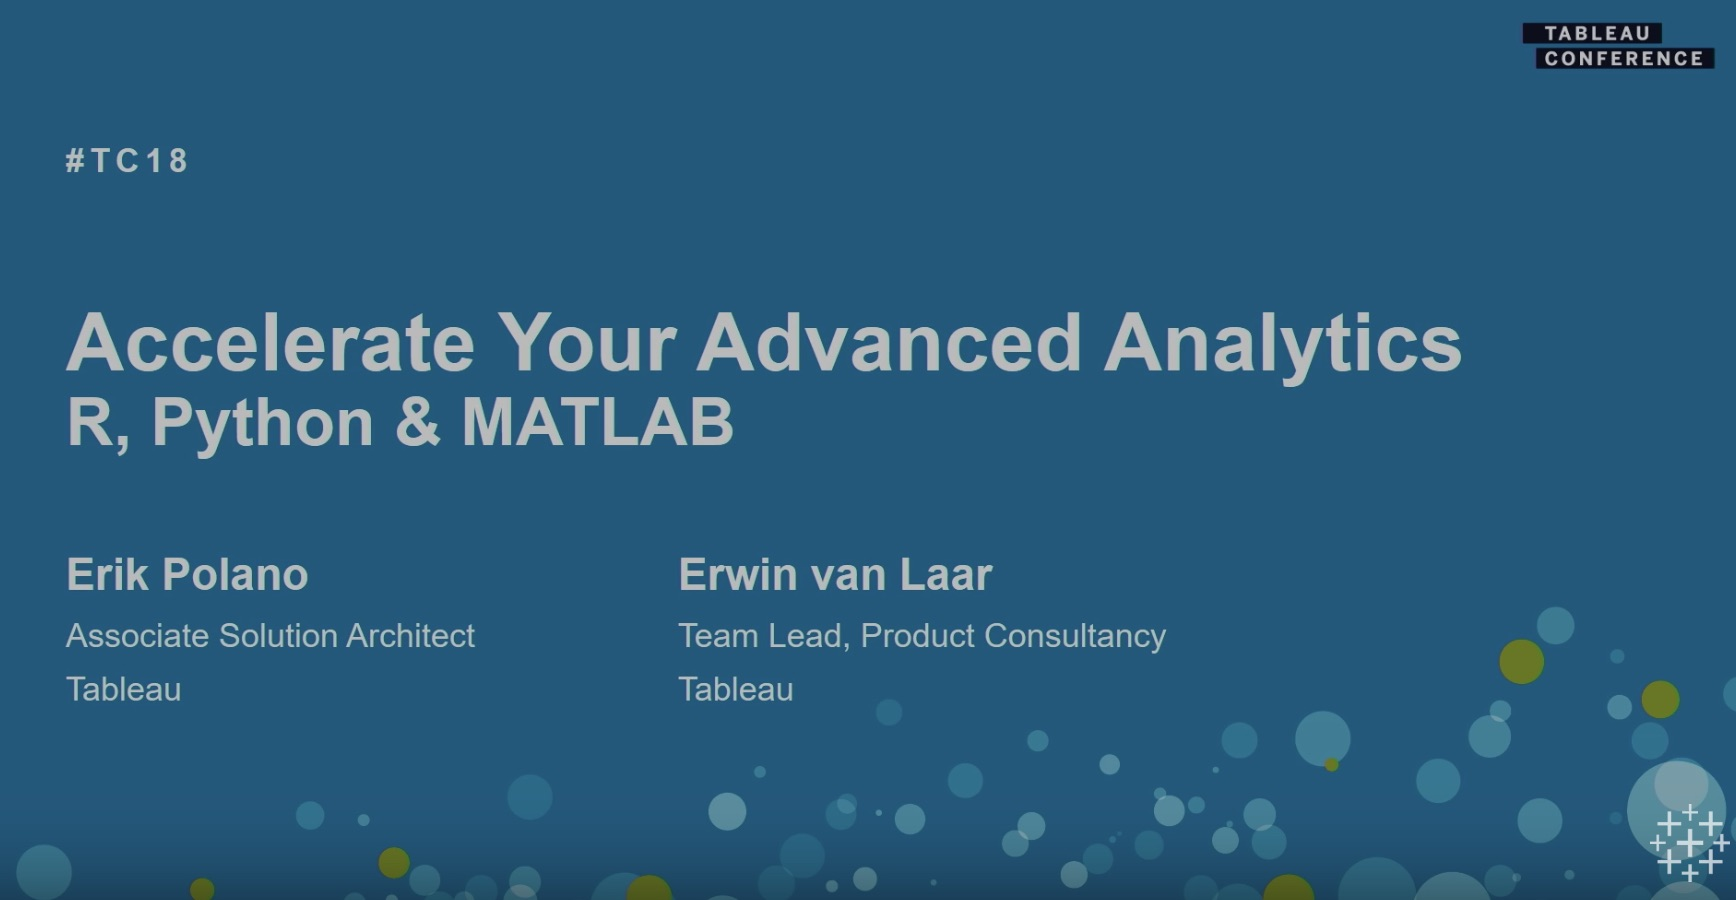 Tc18 Tableauとr Python Matlabを接続して高度な分析をする Tableau Conference 2018 At New Orleans Developers Io